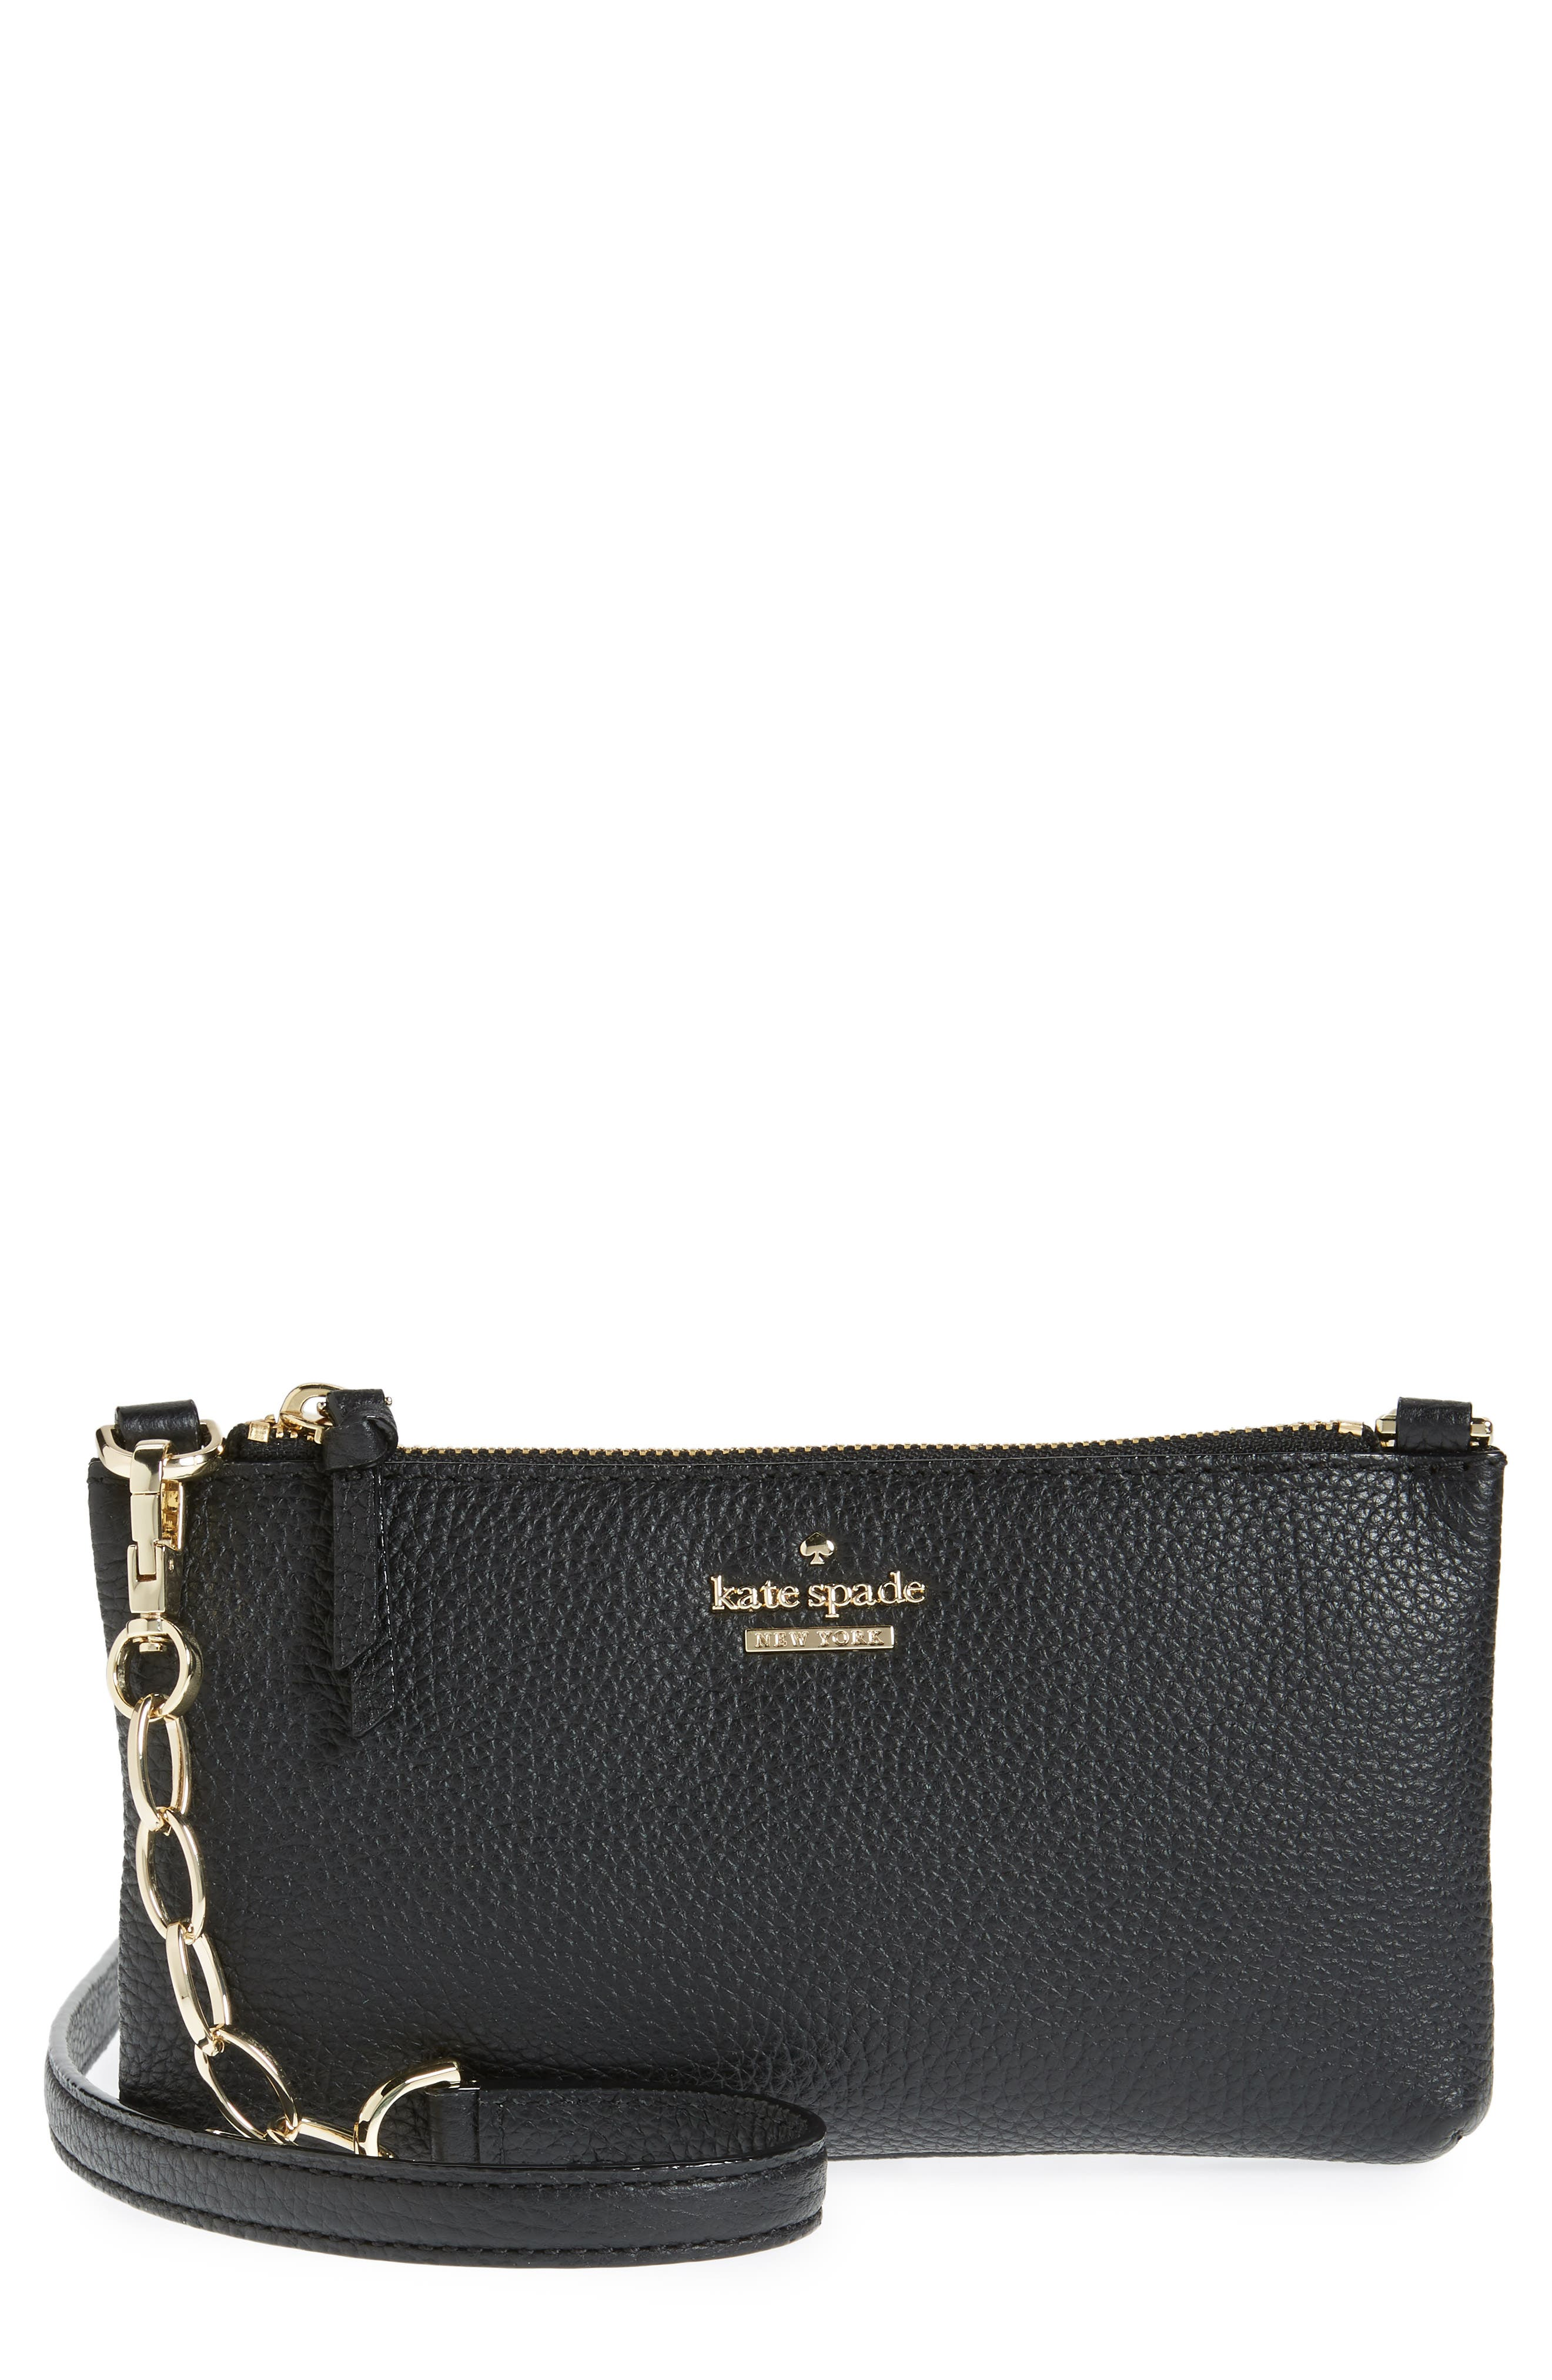 jackson street – dolores leather crossbody bag,                         Main,                         color, Black